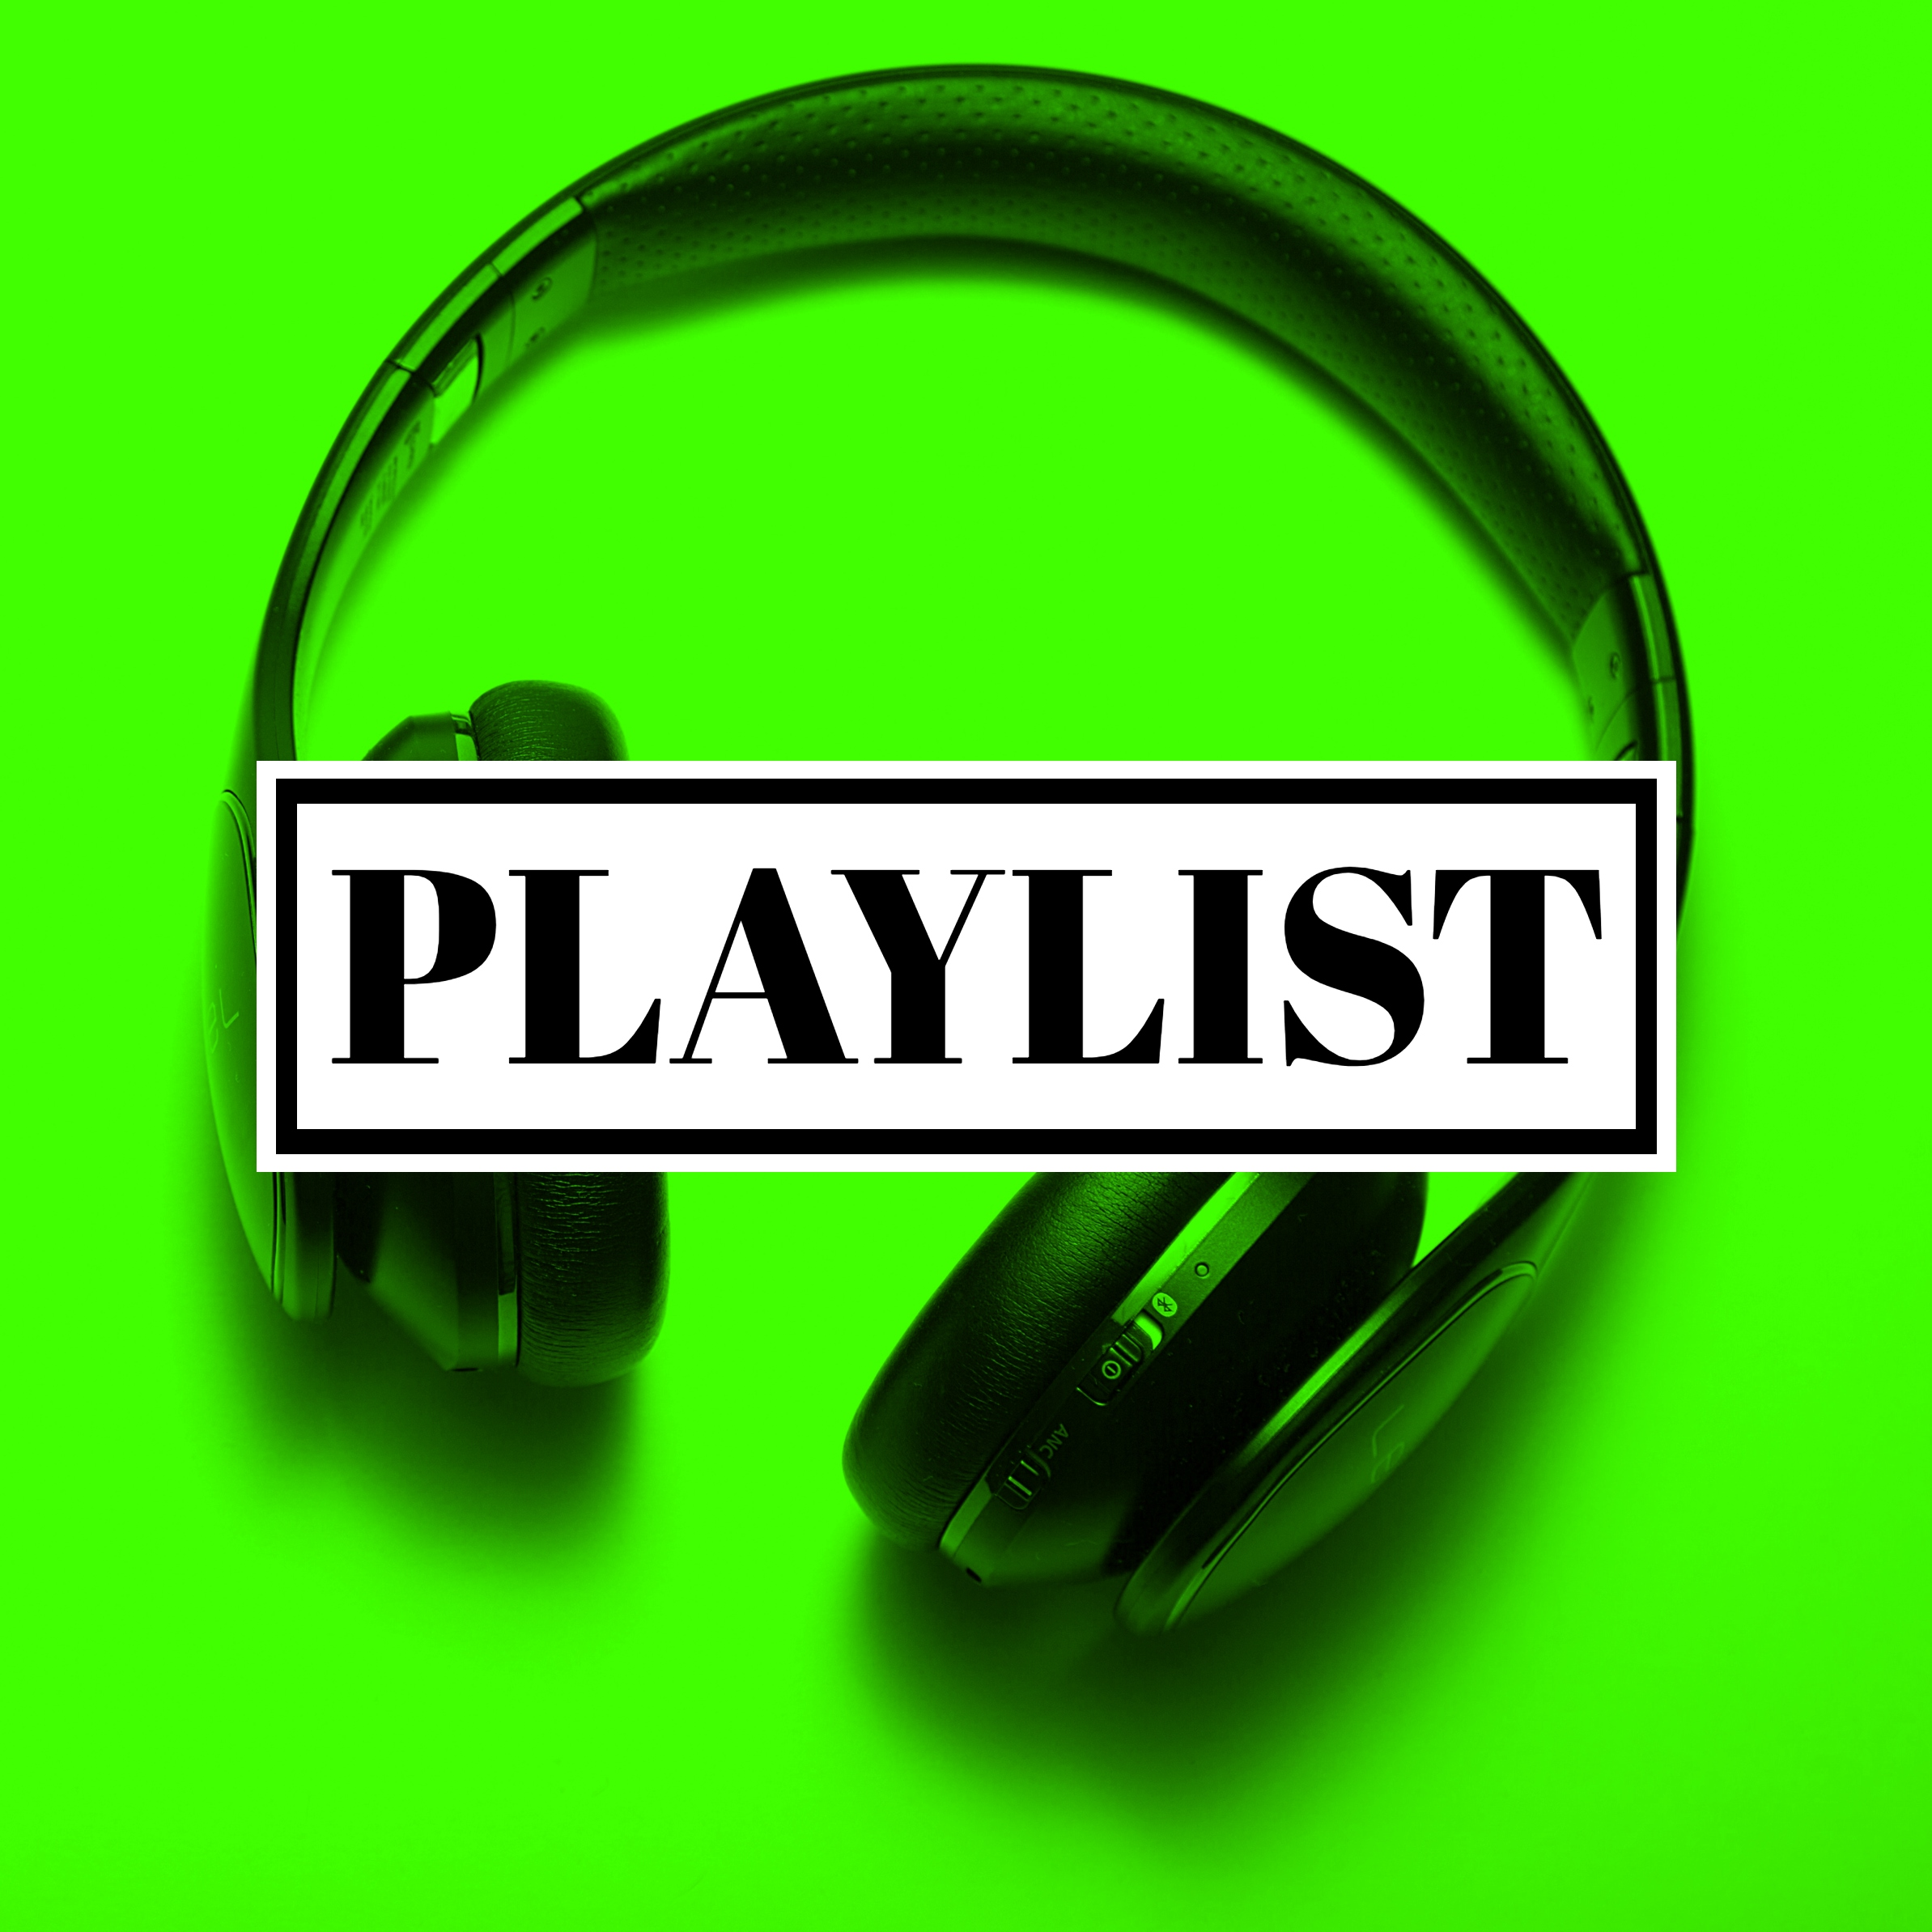 Add your music to my playlist with 6666+ active users